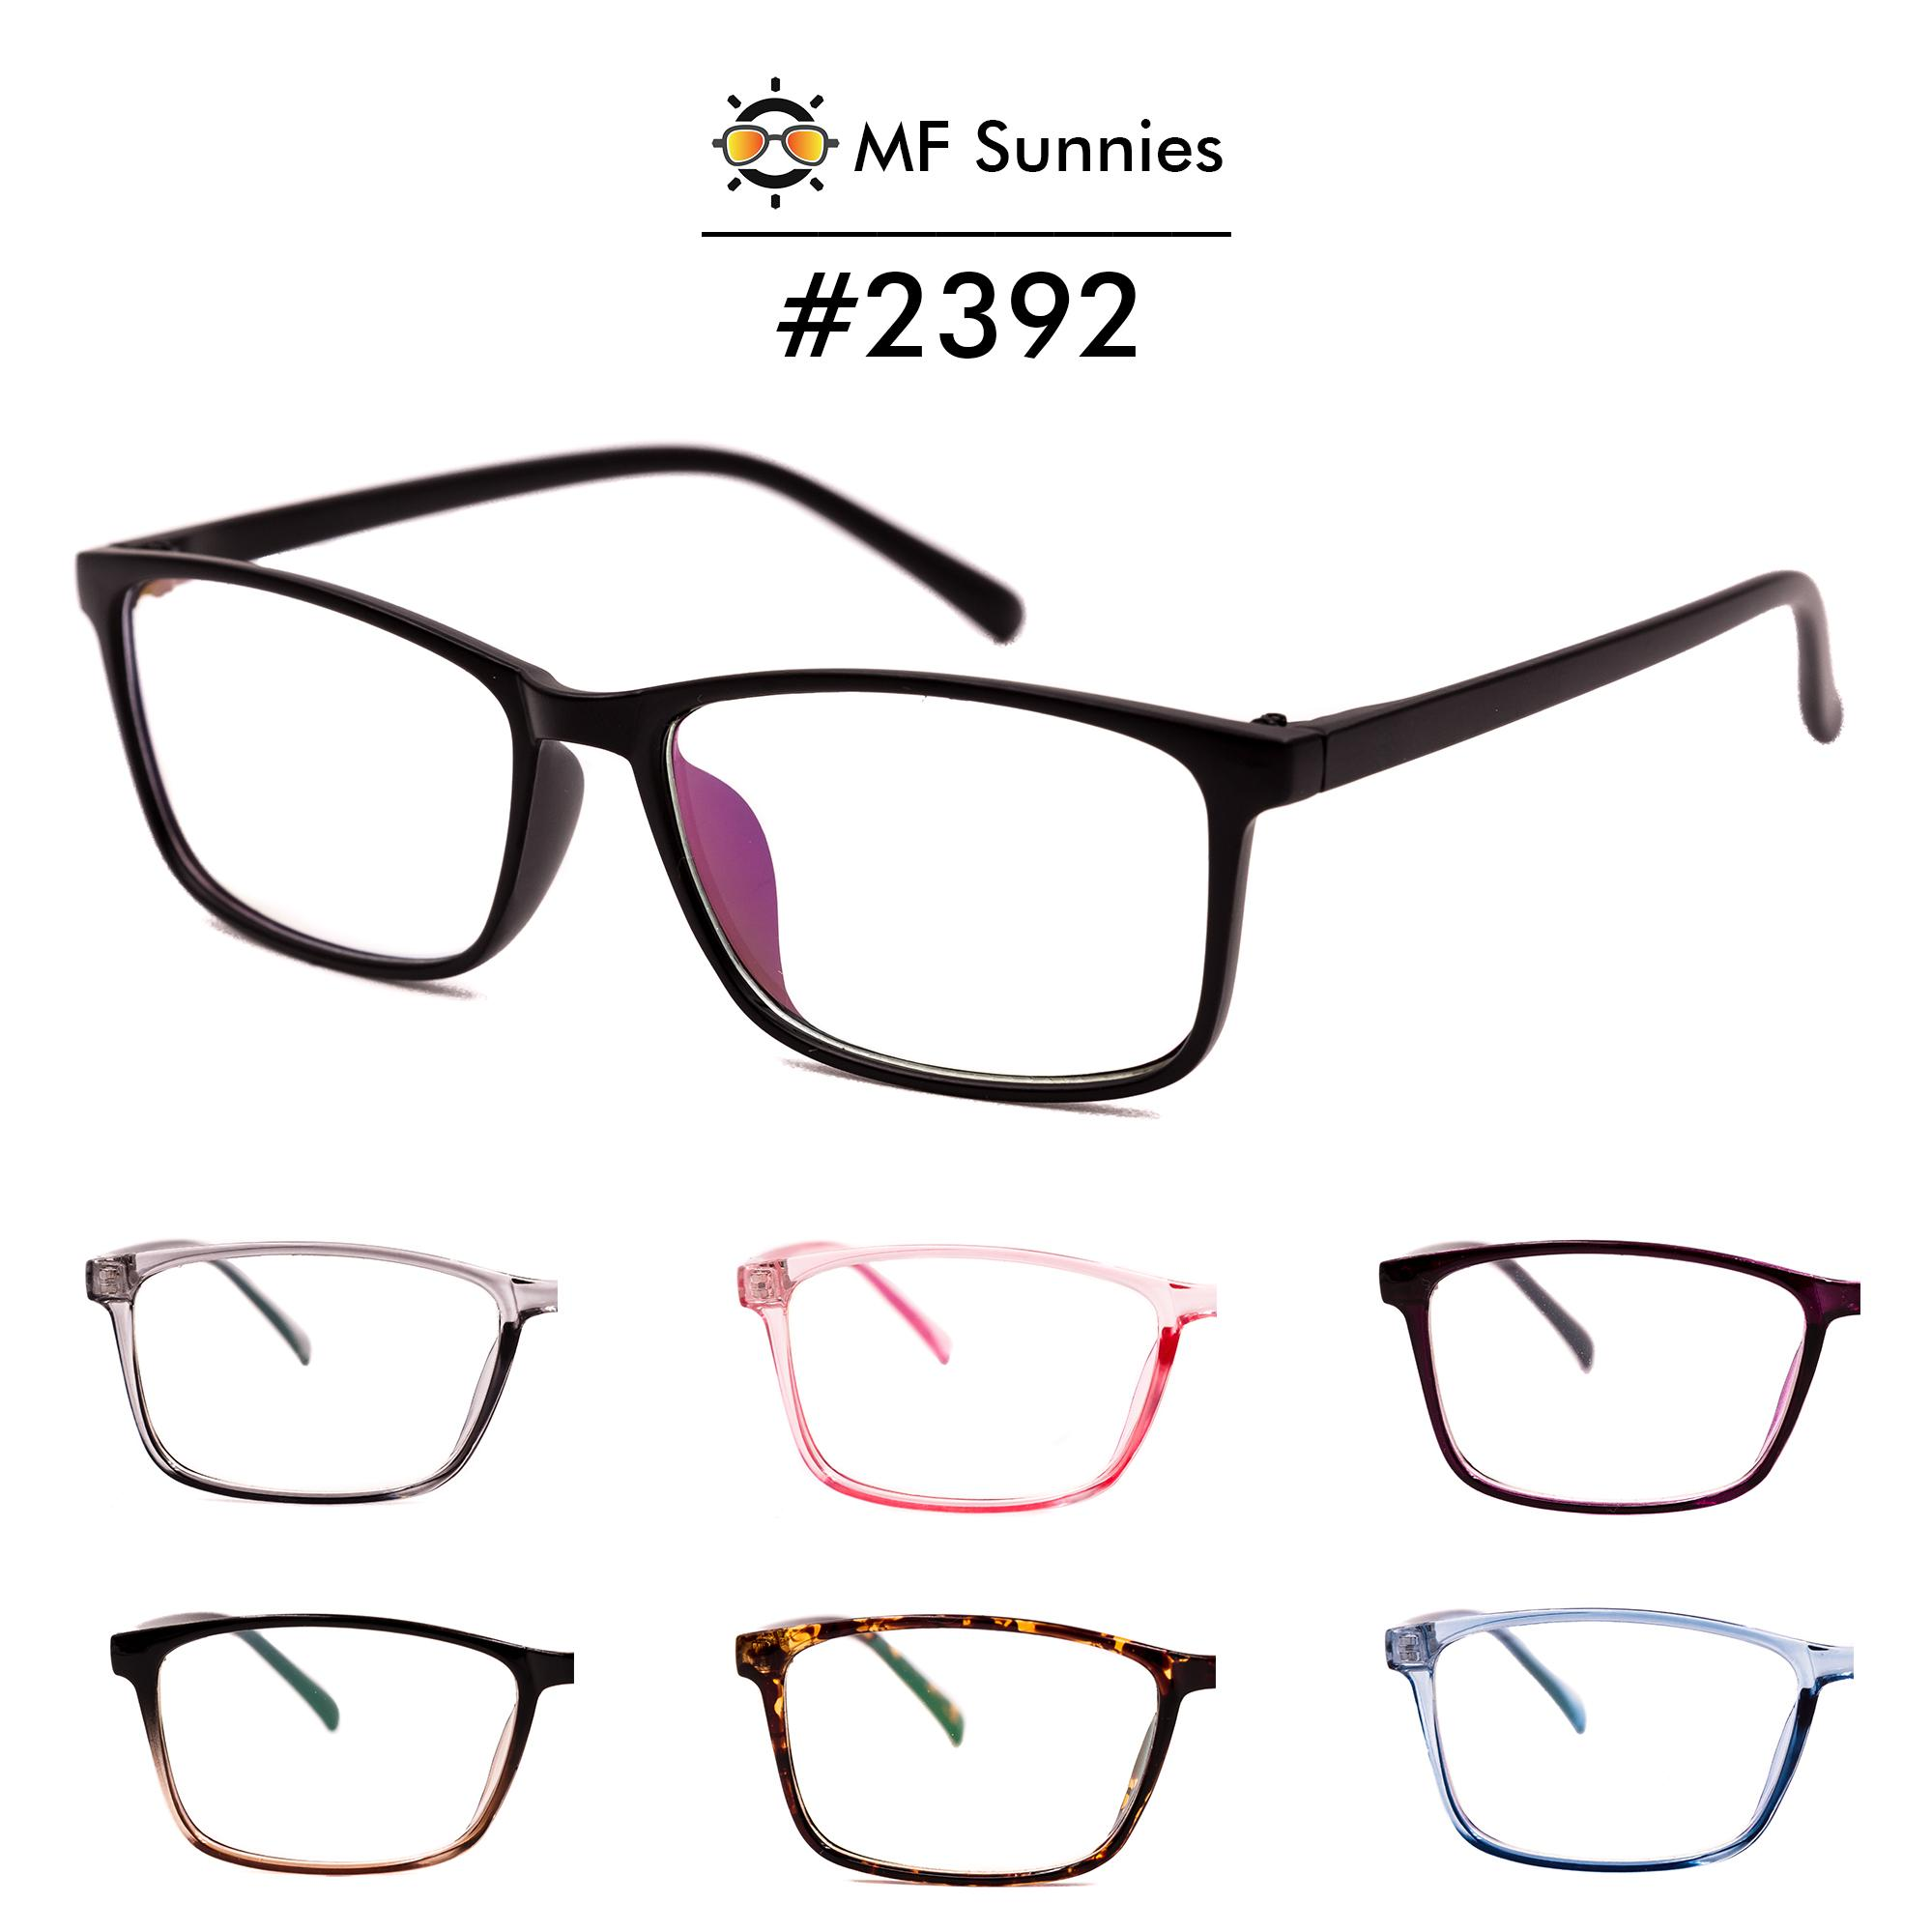 8f3a395f93b MFSunnies Computer Anti-Radiation Blue light Unisex eyewear High quality  acetate optical frame Metal